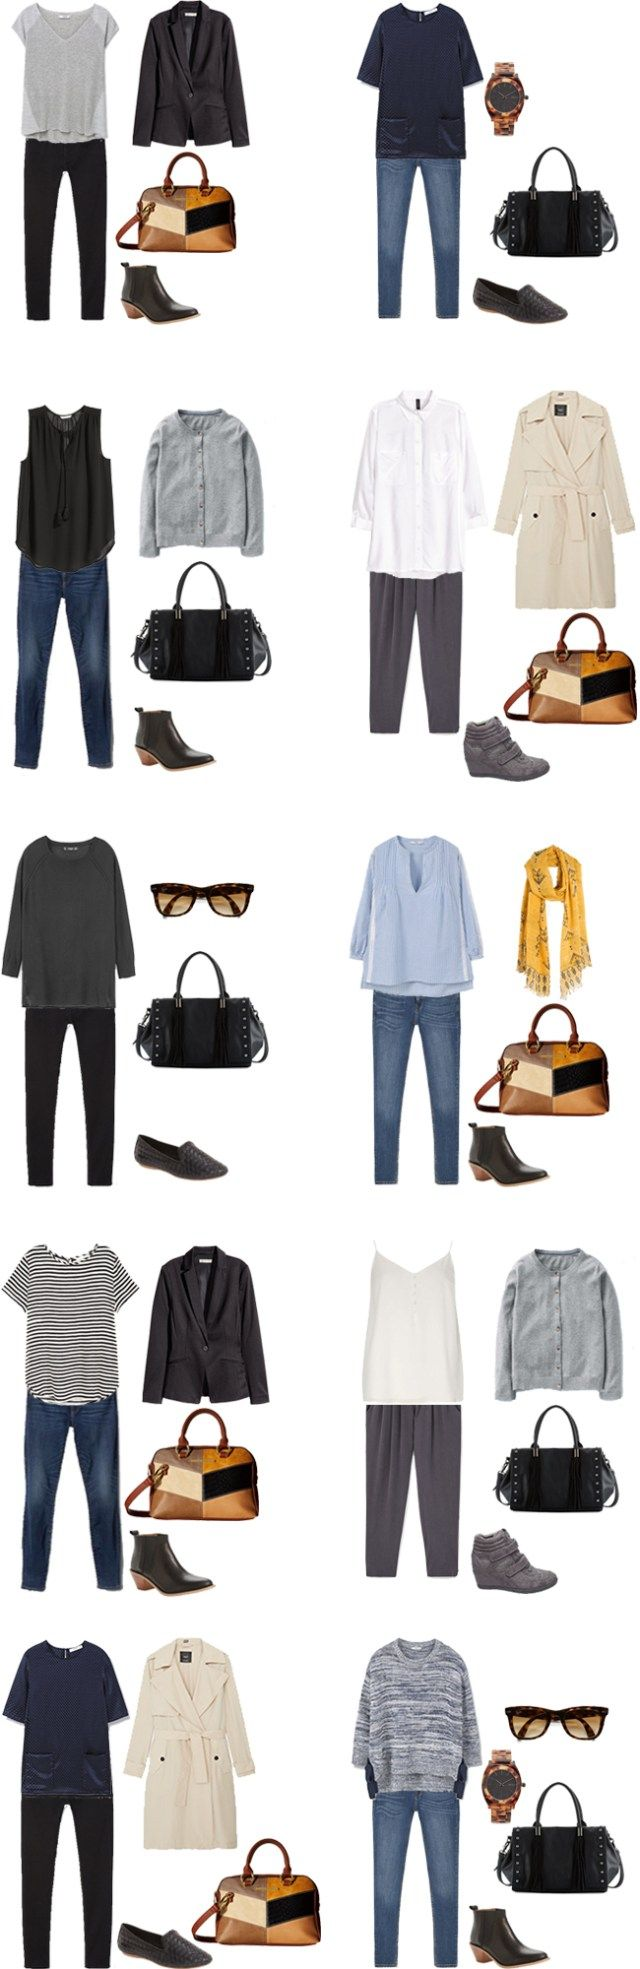 livelovesara - My life in a blog by Sara Watson. Packing list: 3 weeks on a Business Trip in Summer 2016. Outfits Options 1